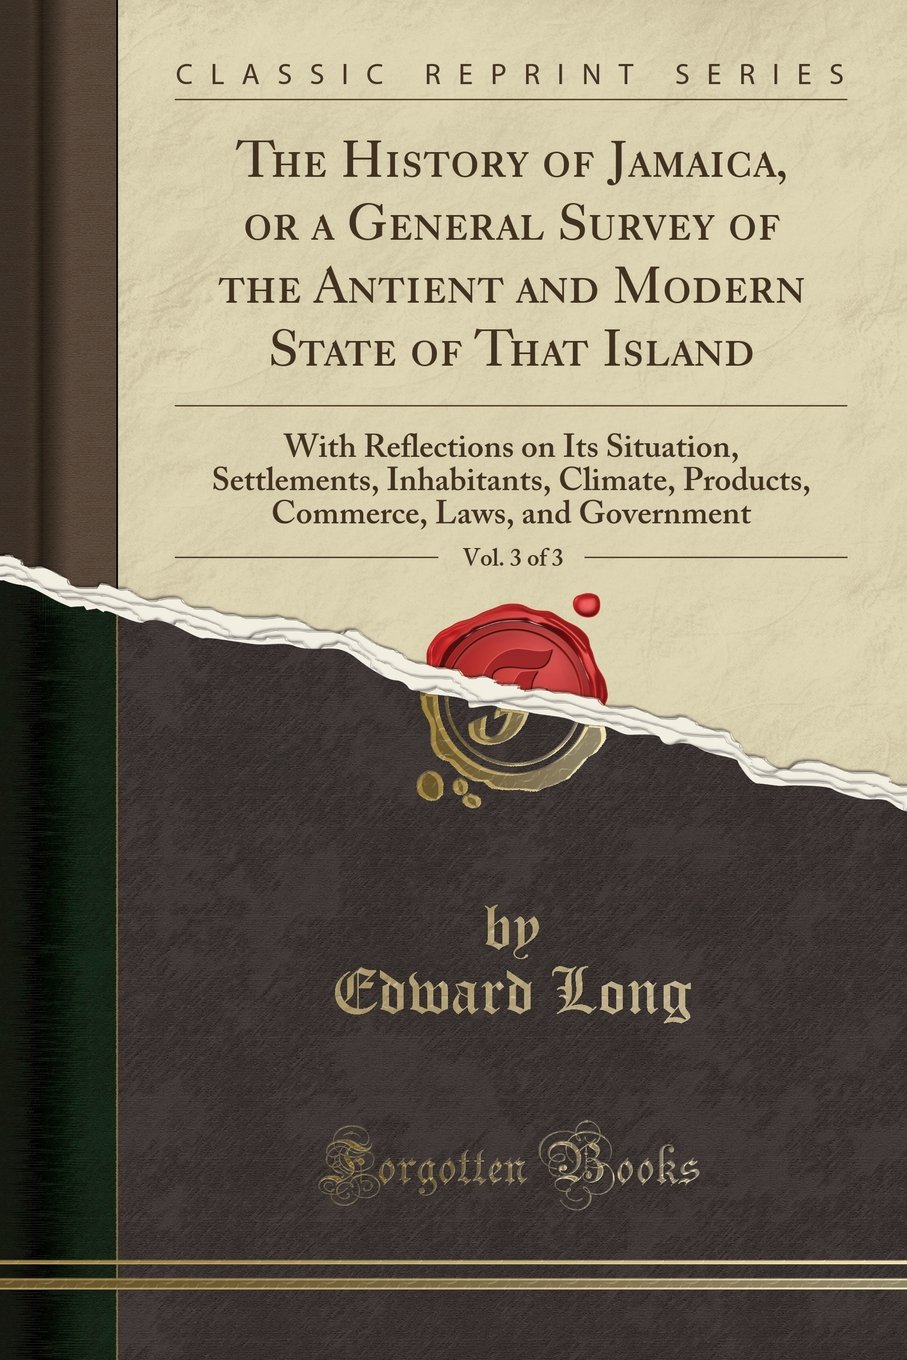 Download The History of Jamaica, or a General Survey of the Antient and Modern State of That Island, Vol. 3 of 3: With Reflections on Its Situation, ... Laws, and Government (Classic Reprint) ebook